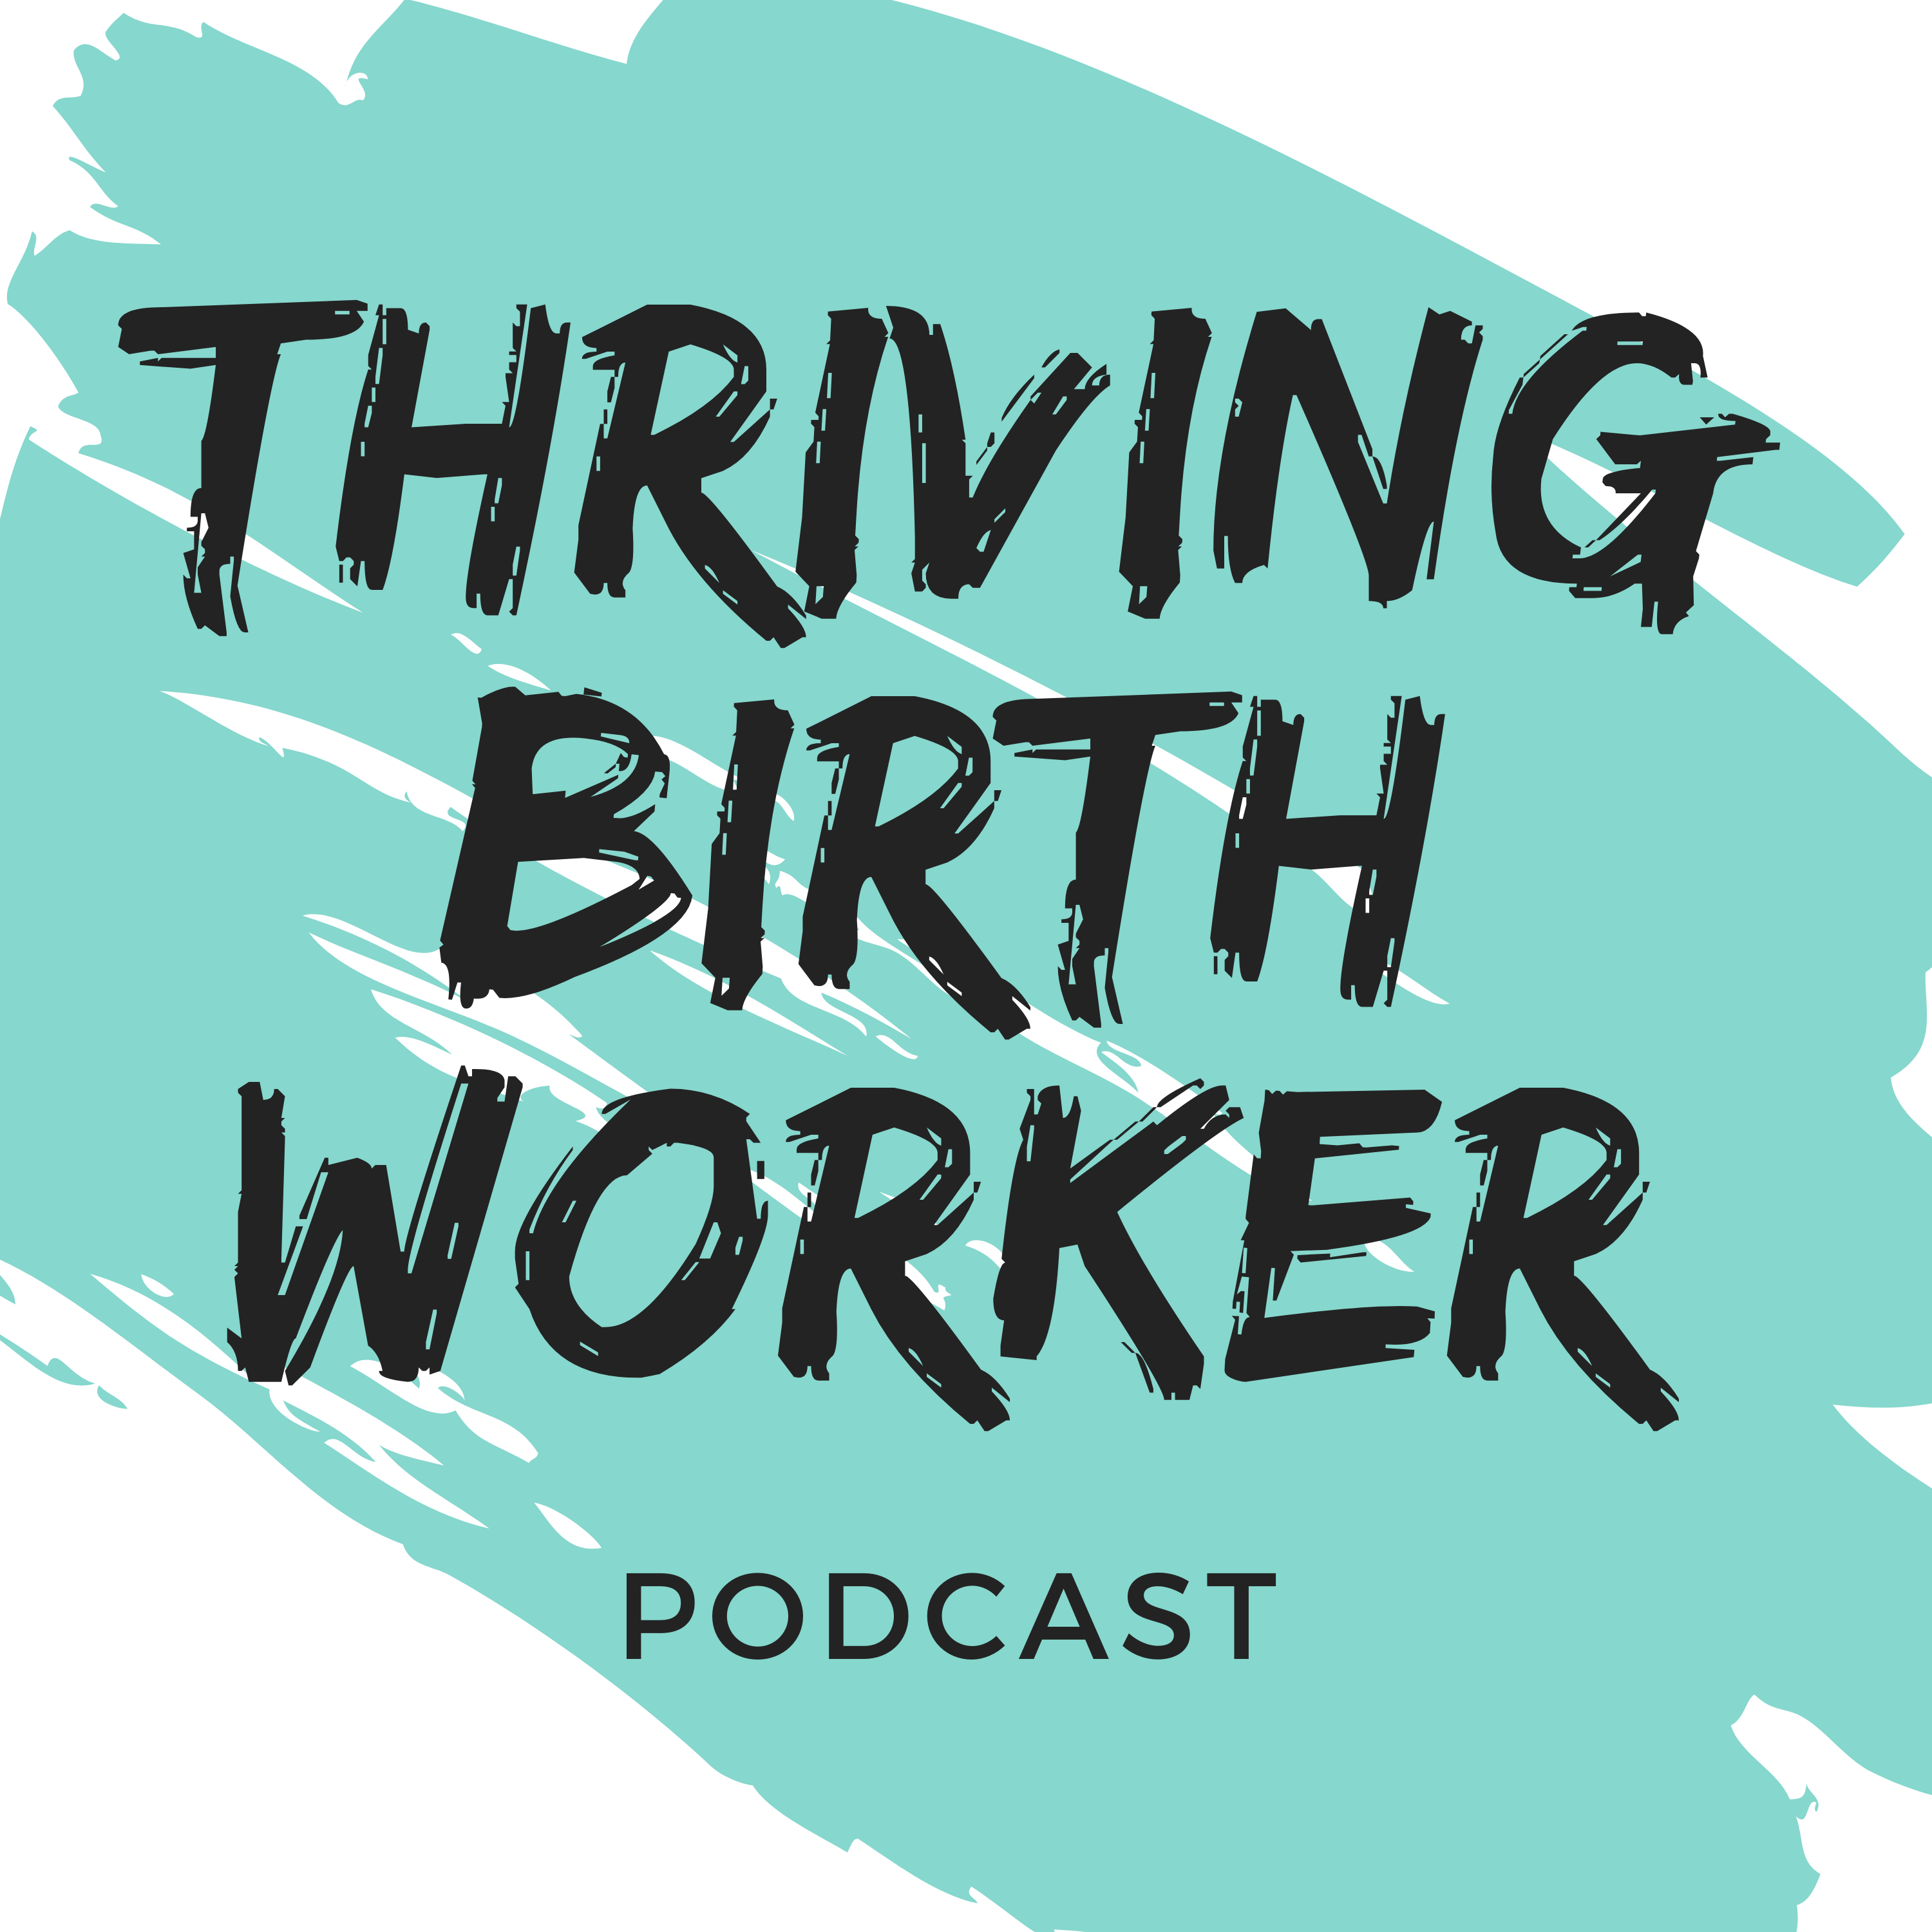 Thriving Birth Worker Podcast show art